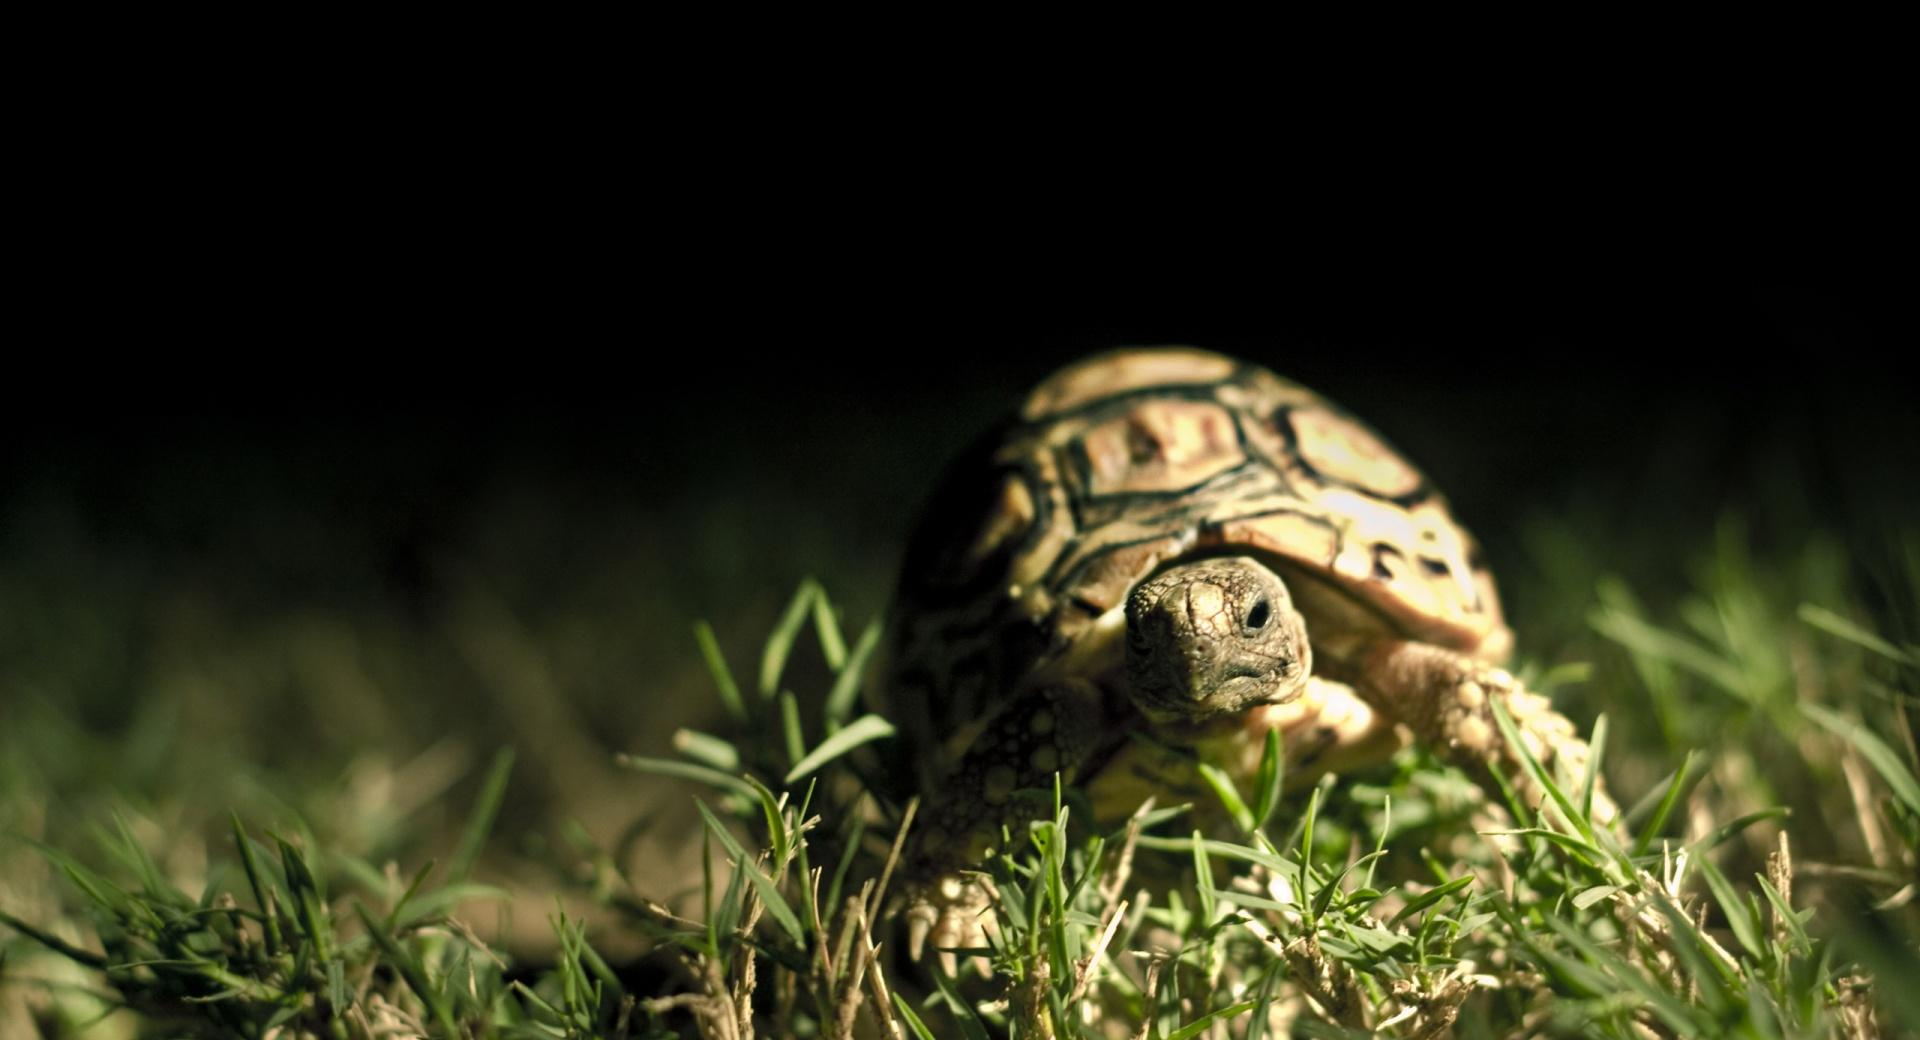 Turtle Close Up wallpapers HD quality